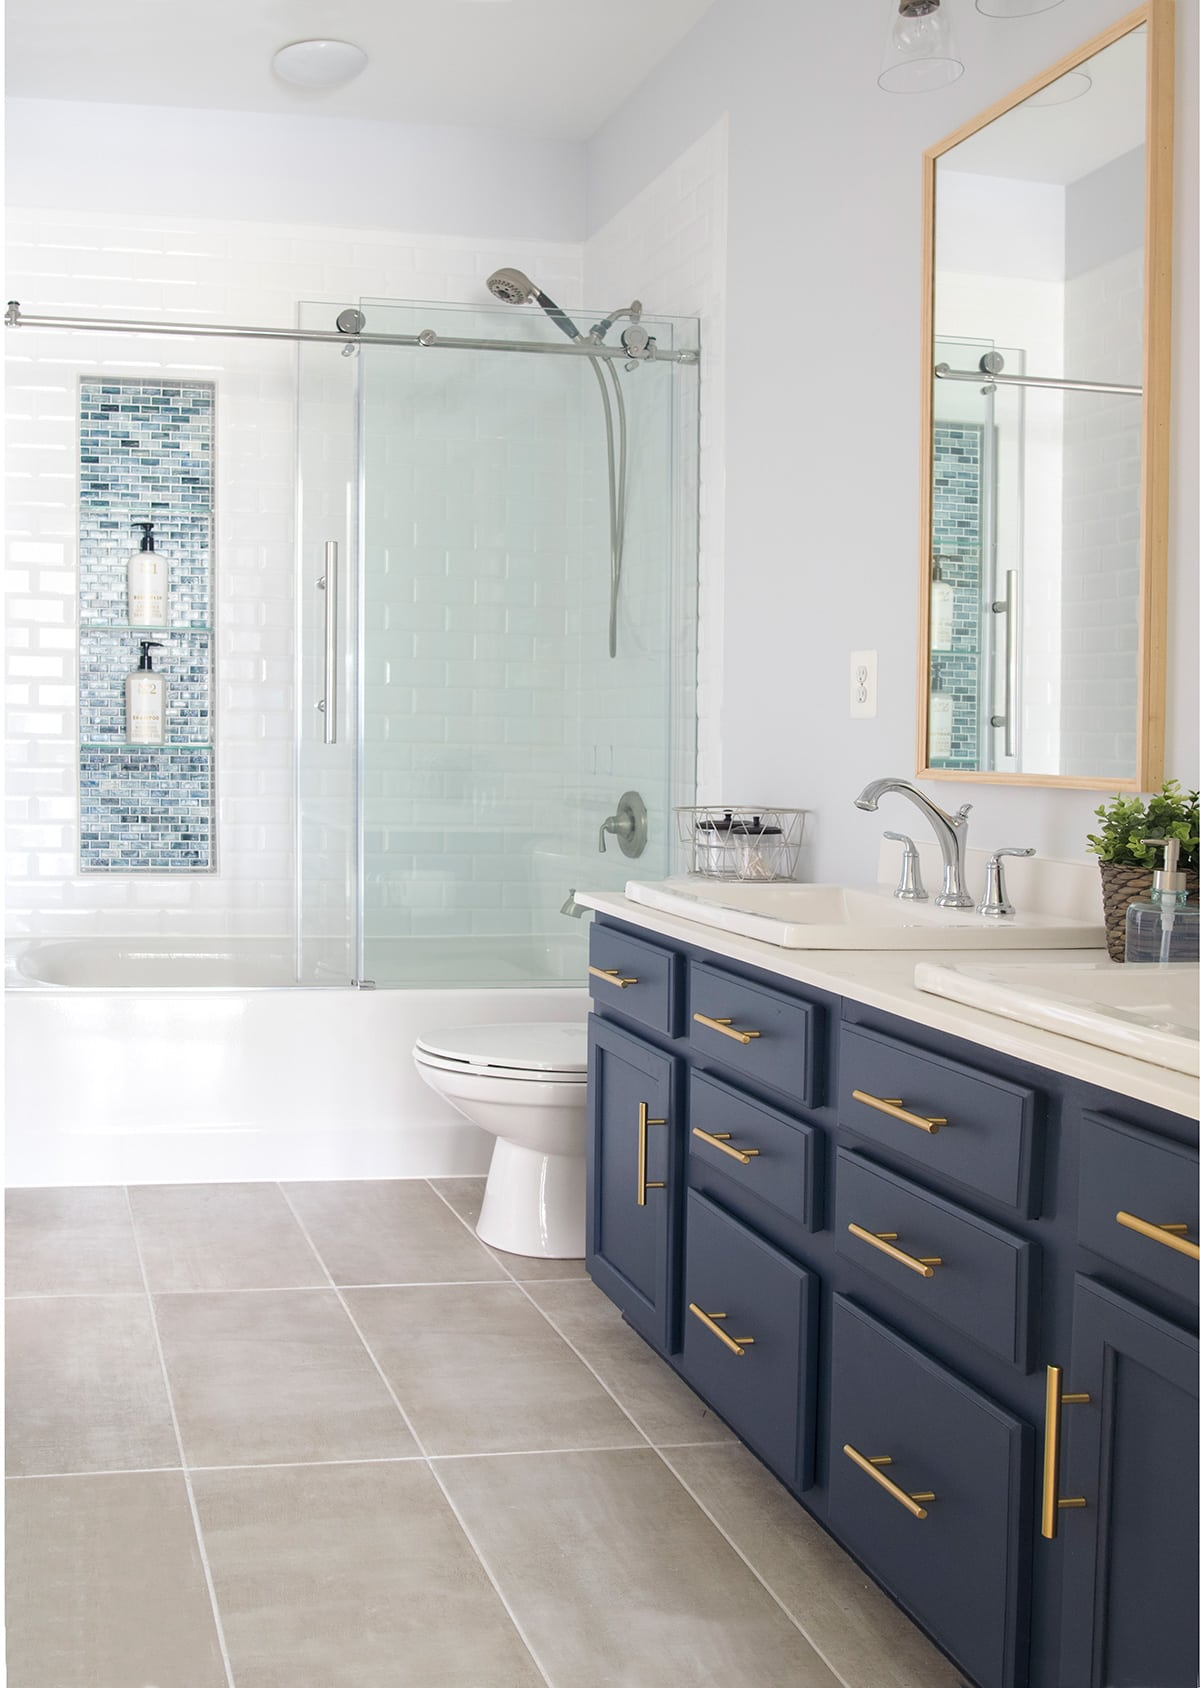 Modern bathroom remodel including navy blue vanity, glass shower, tile flooring. Modern traditional in in style.